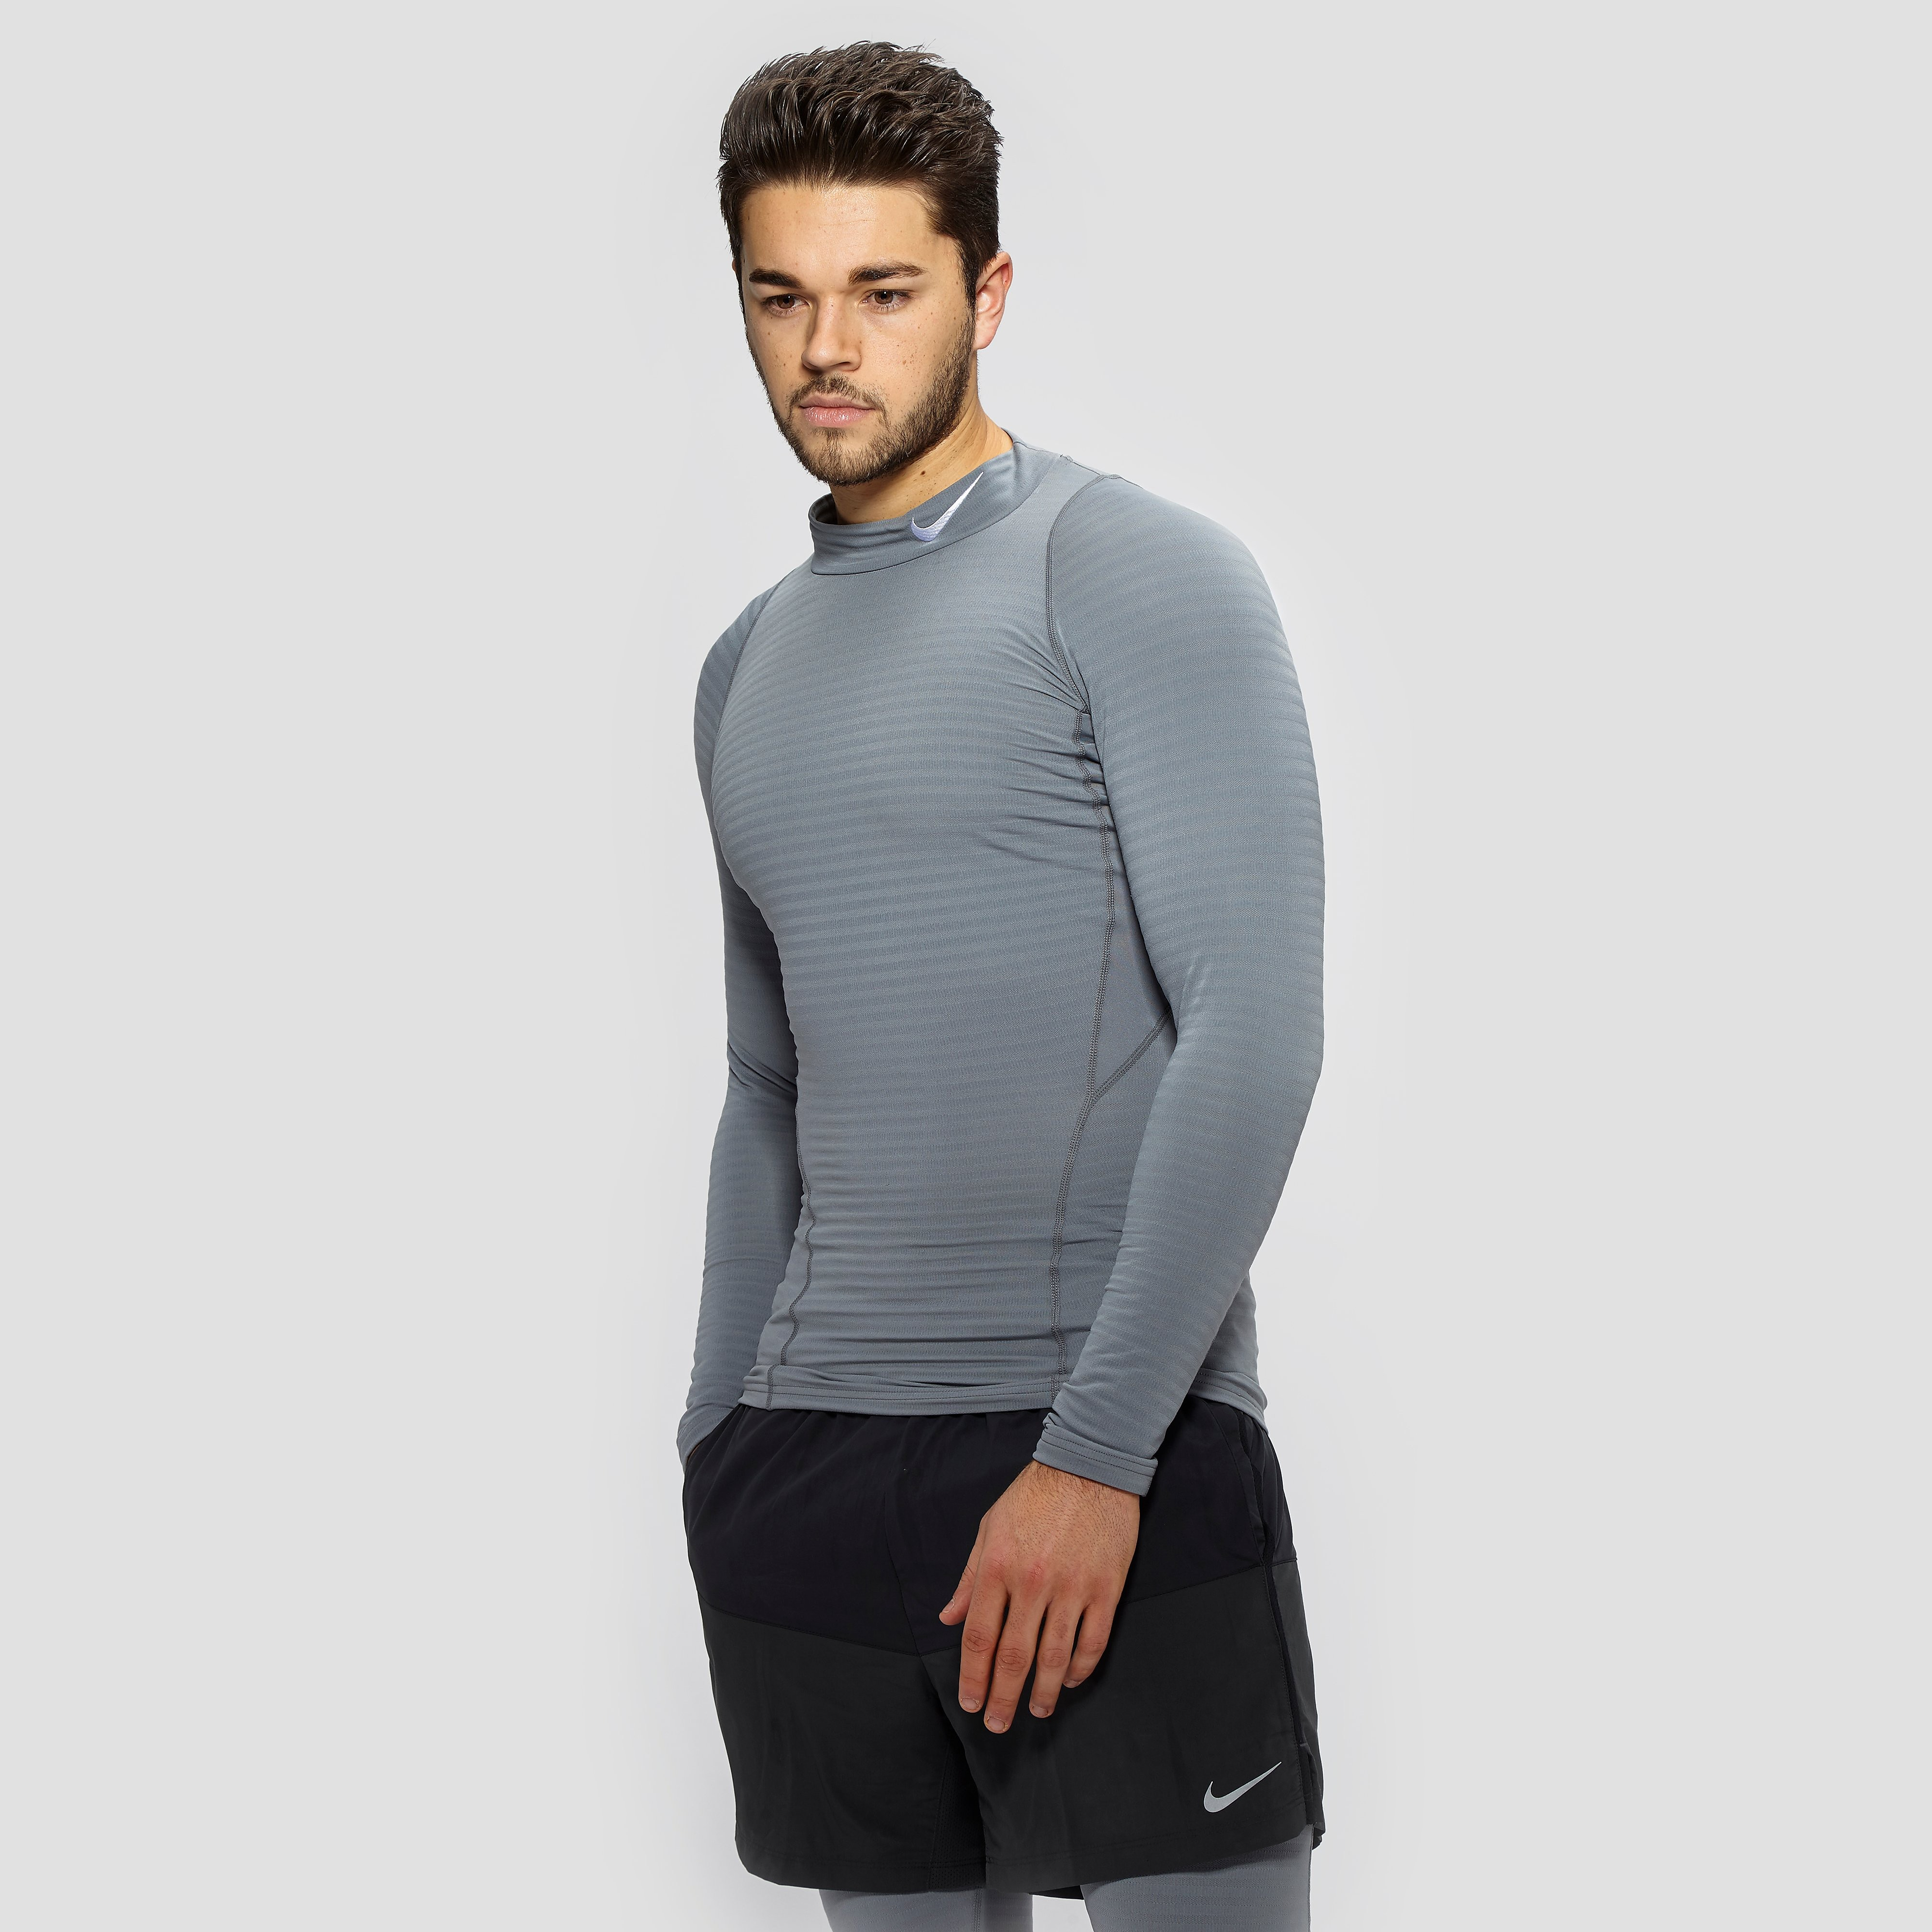 Nike Pro Warm Compression Long Sleeve Top